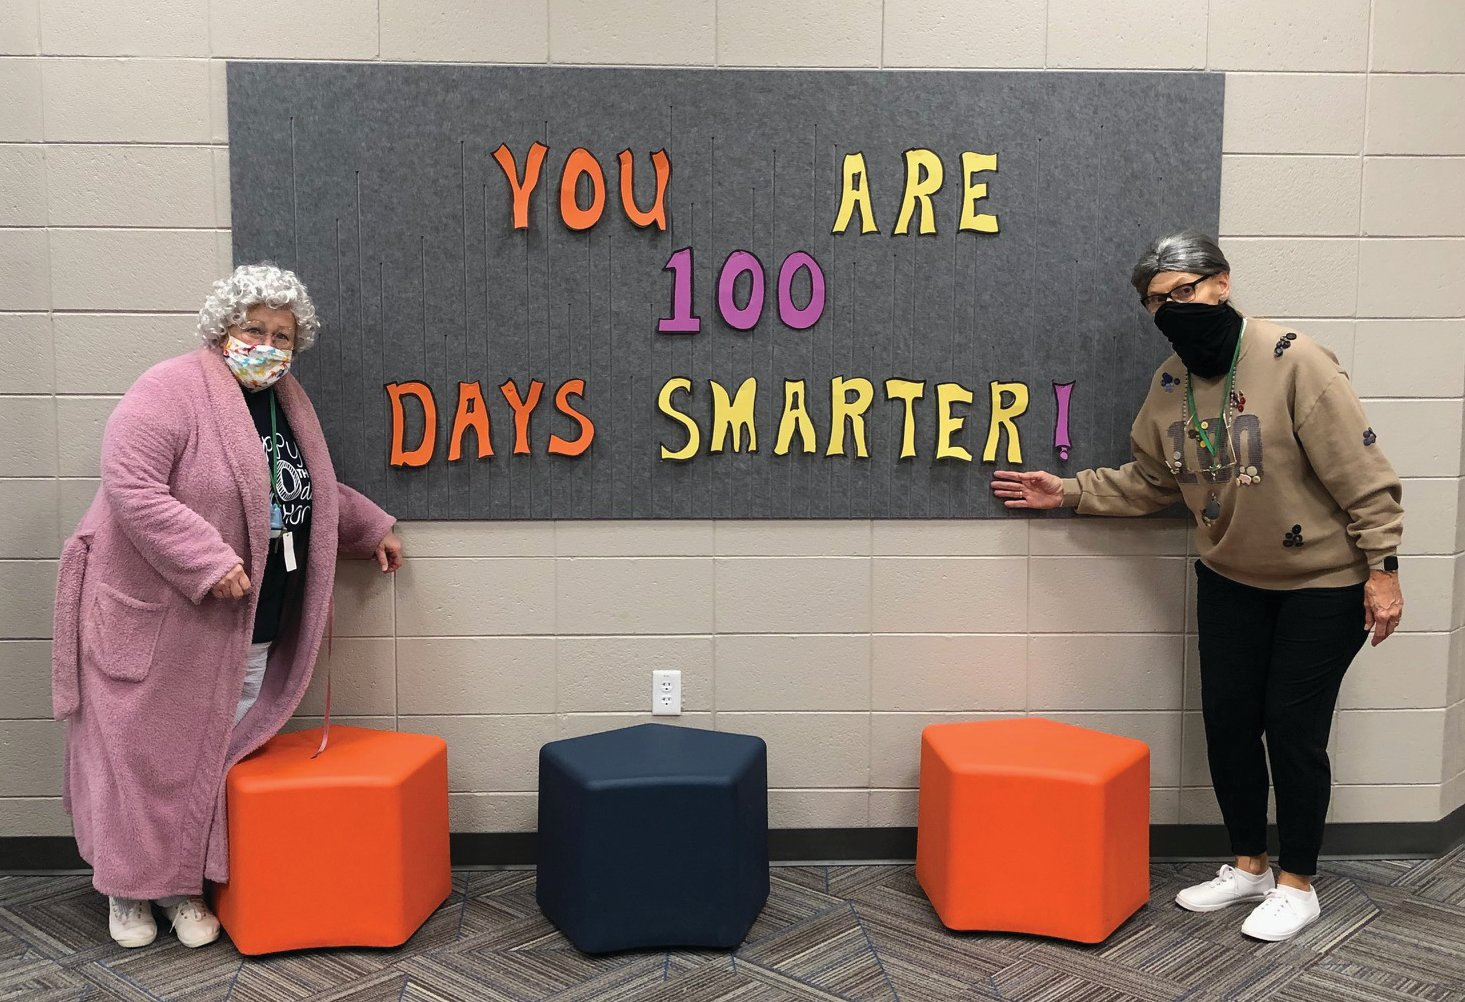 Local schools celebrated the 100th day of in-person classes Thursday with a dress-up day and special activities.